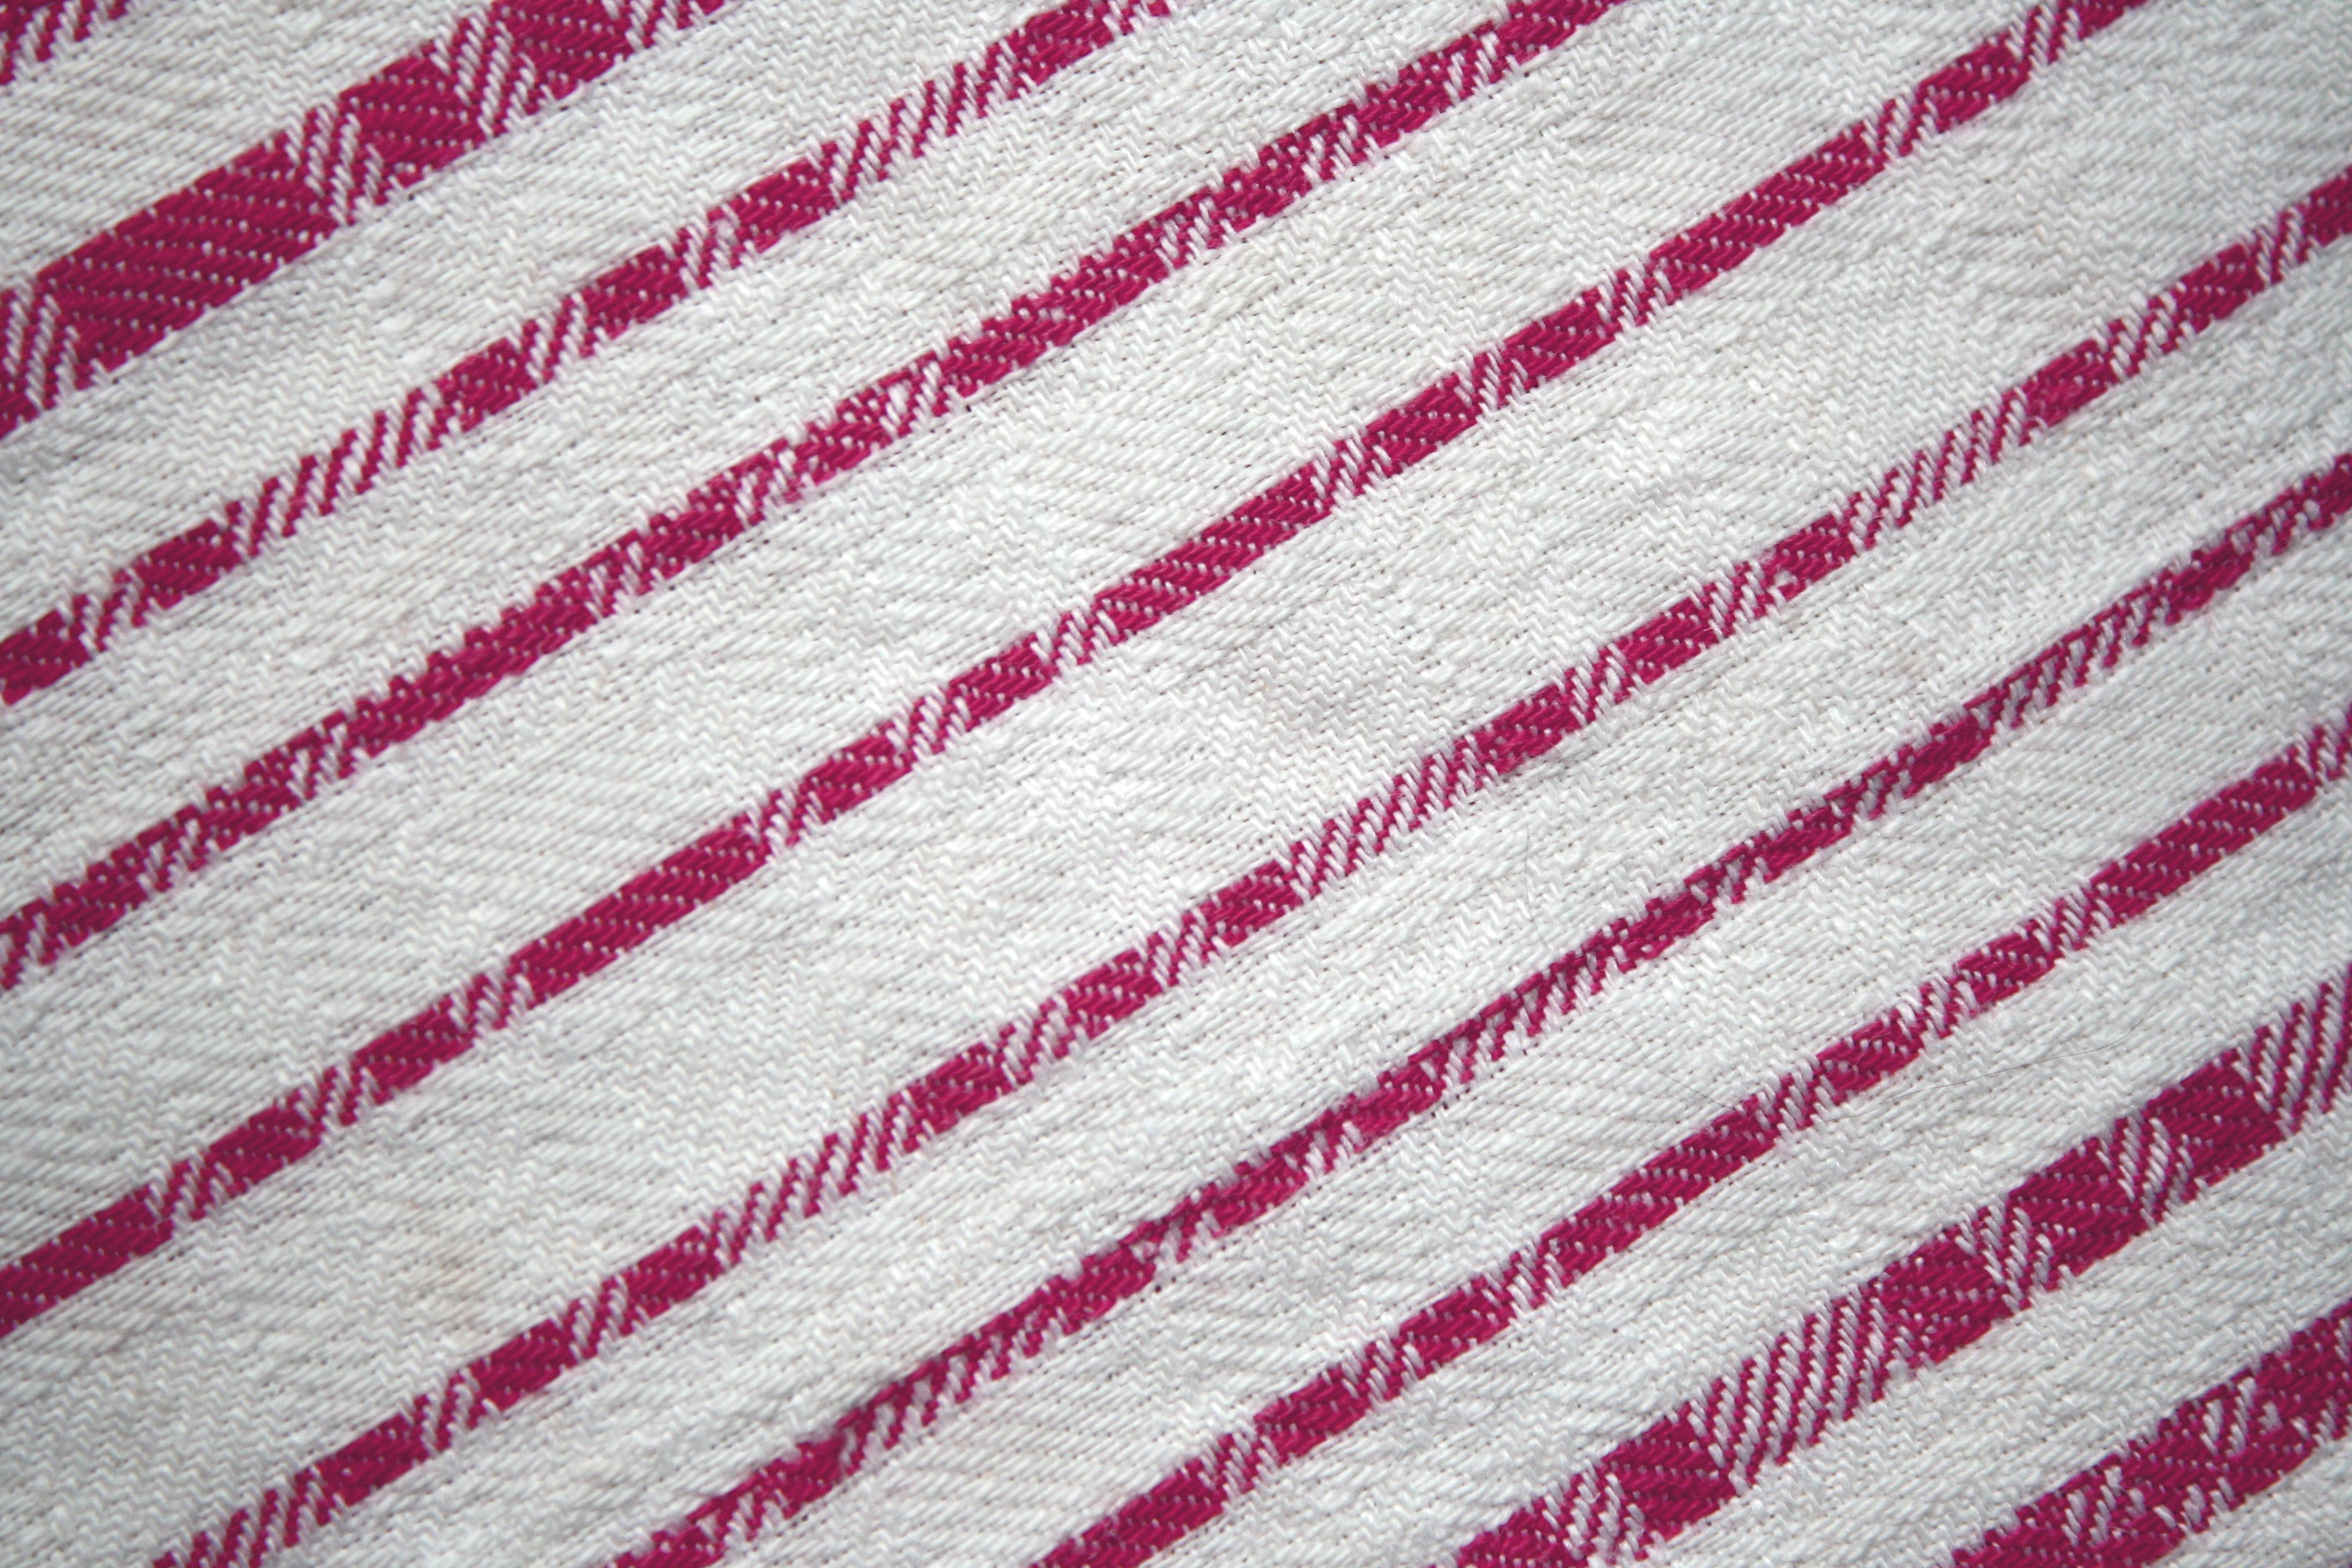 Pink fabric texture free high resolution photo dimensions 3888 - Pink On White Diagonal Stripes Fabric Texture